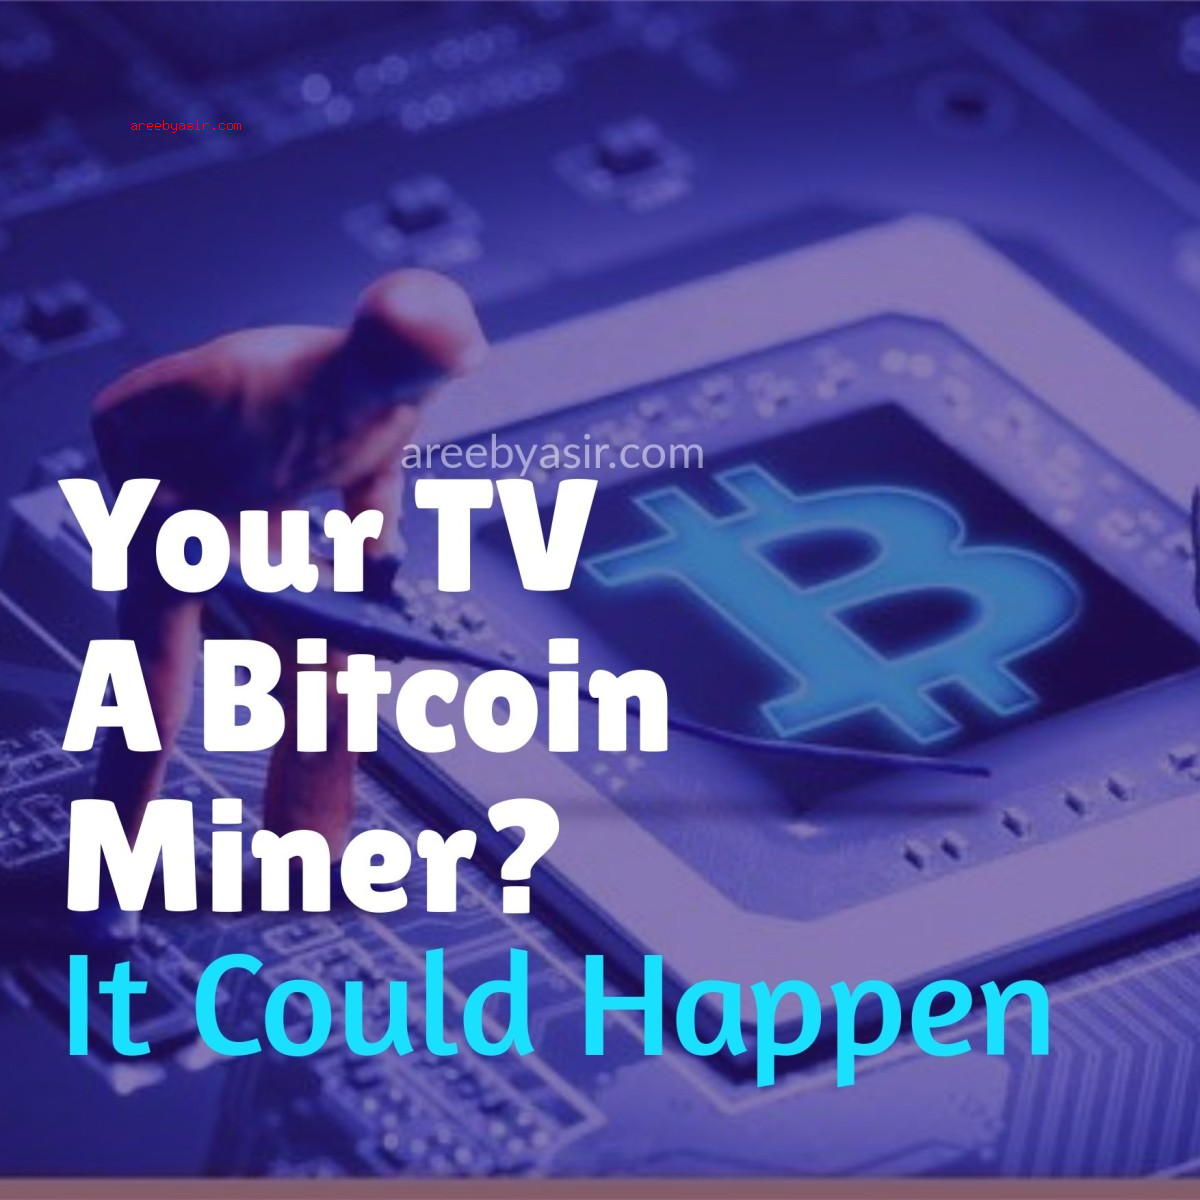 Your TV A Bitcoin Miner?